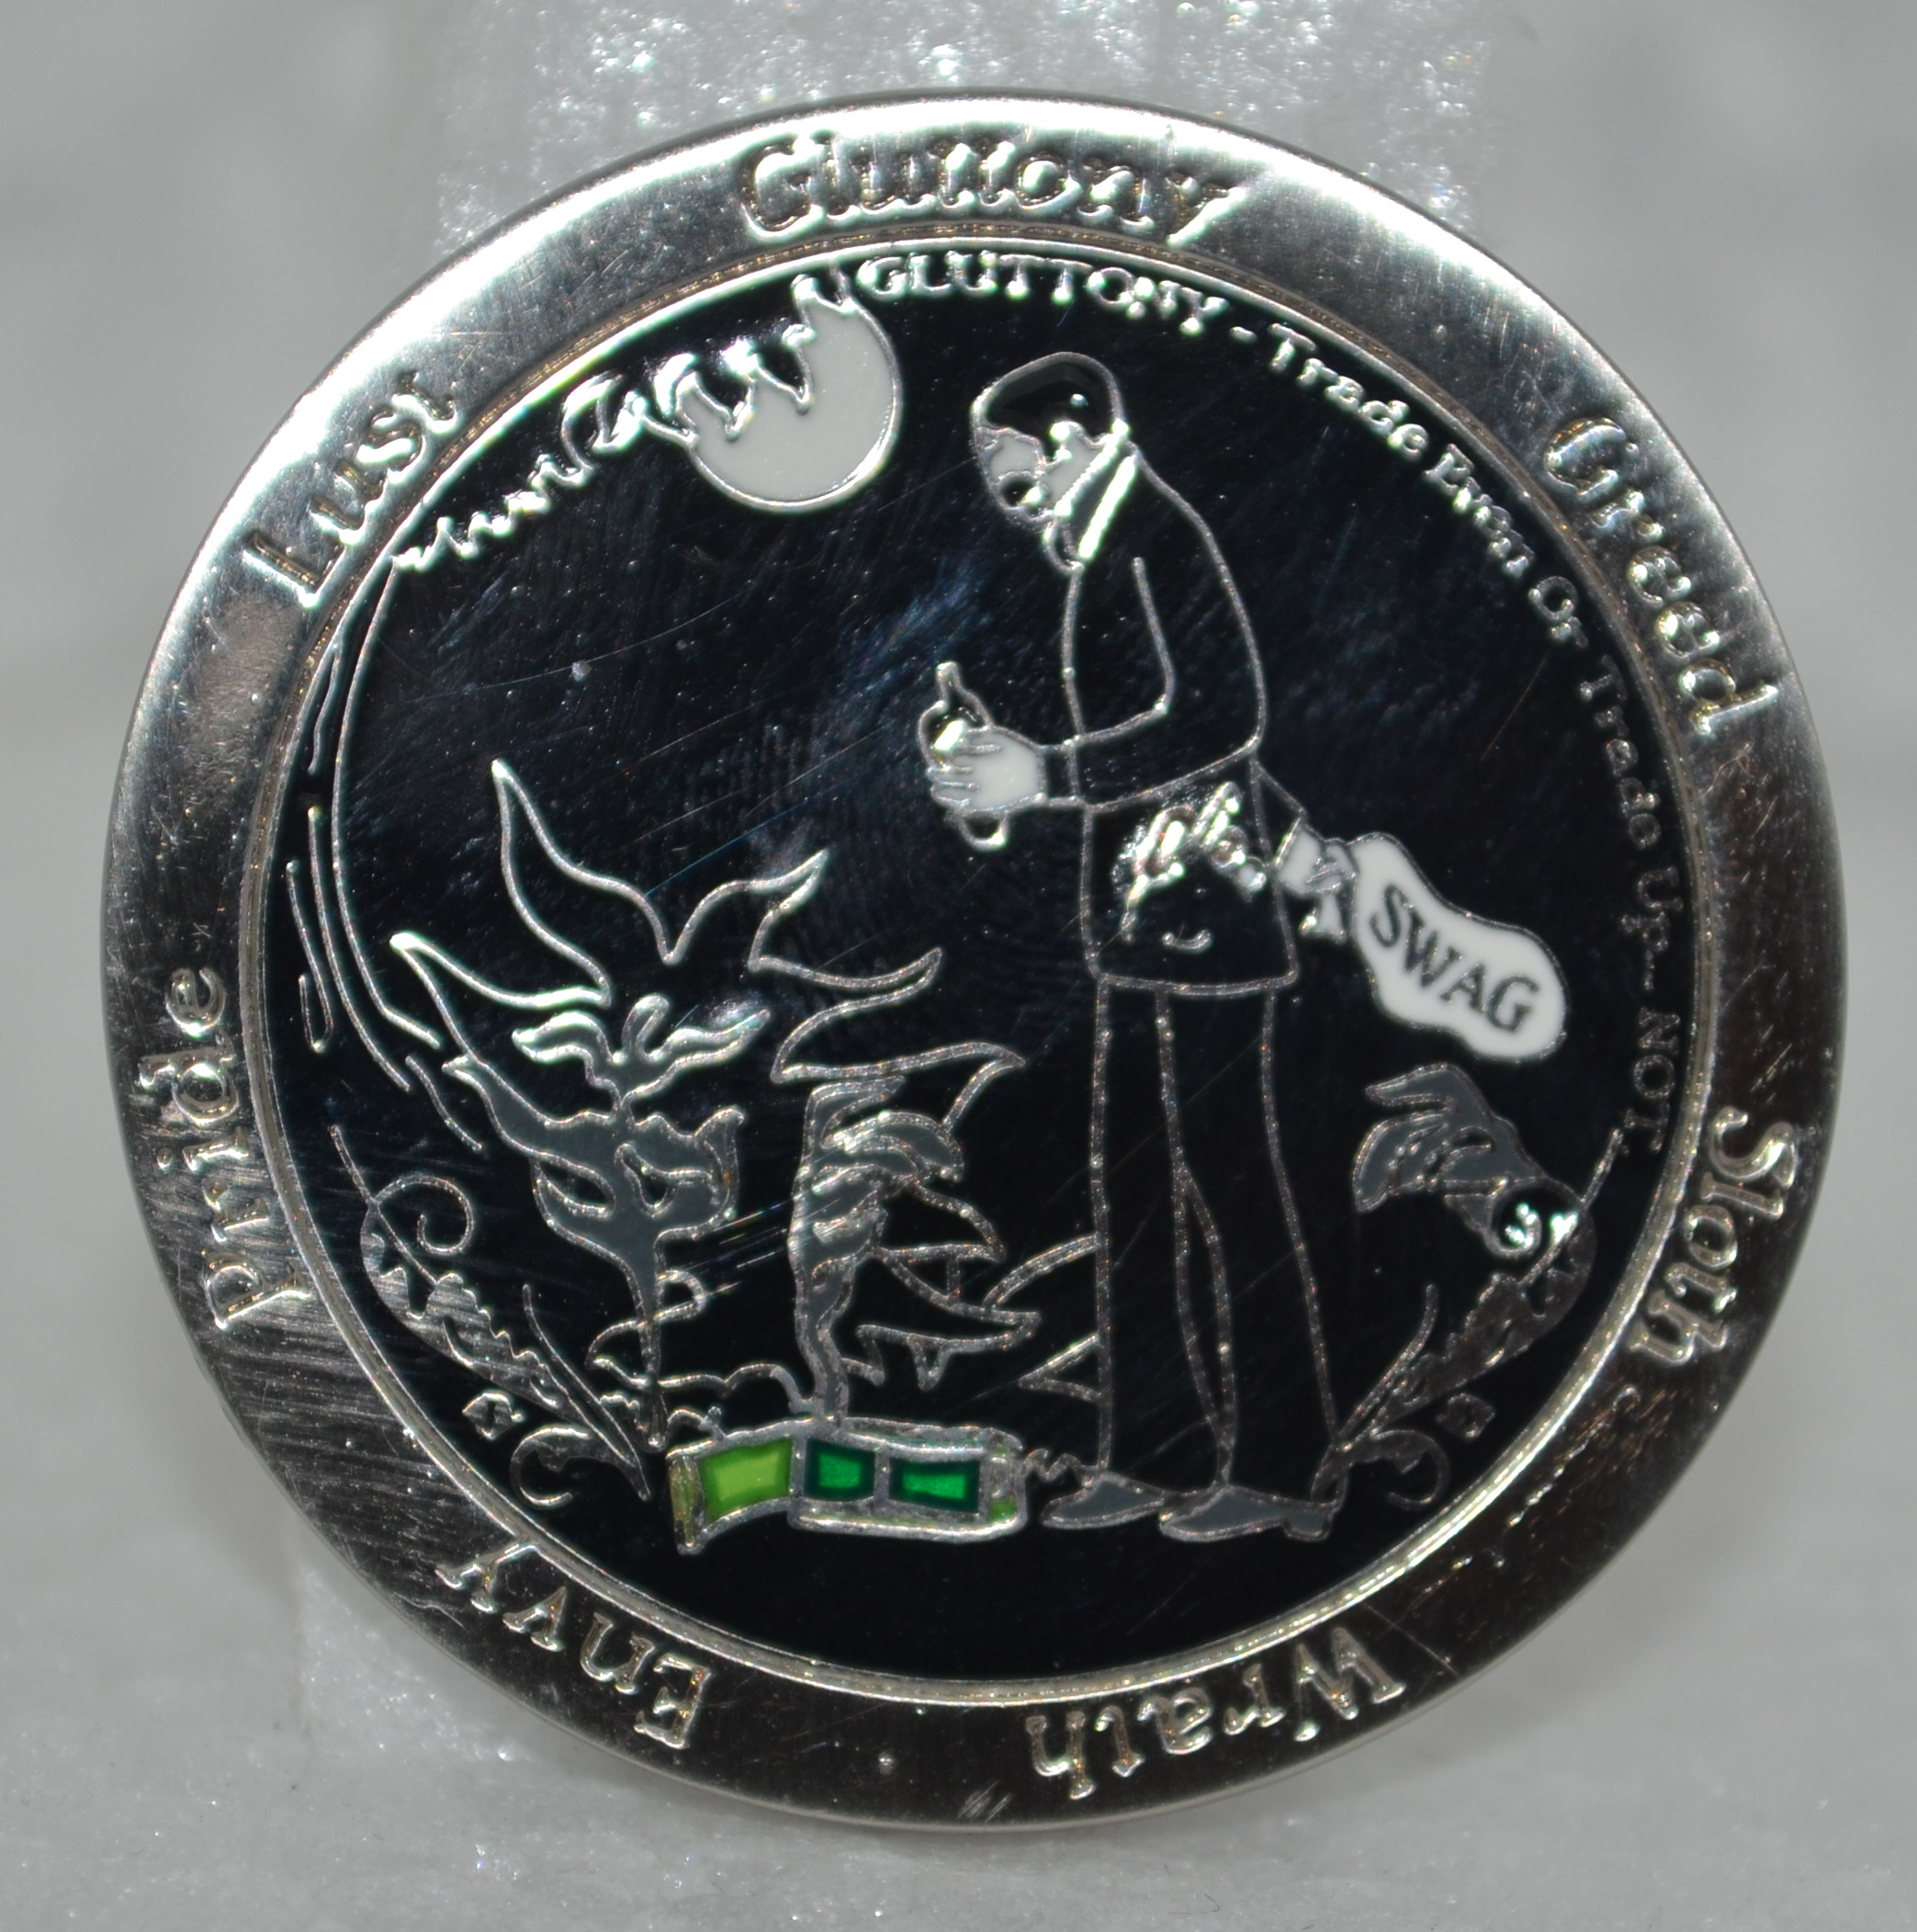 7 Deadly Caching Sins - Gluttony Geocoin